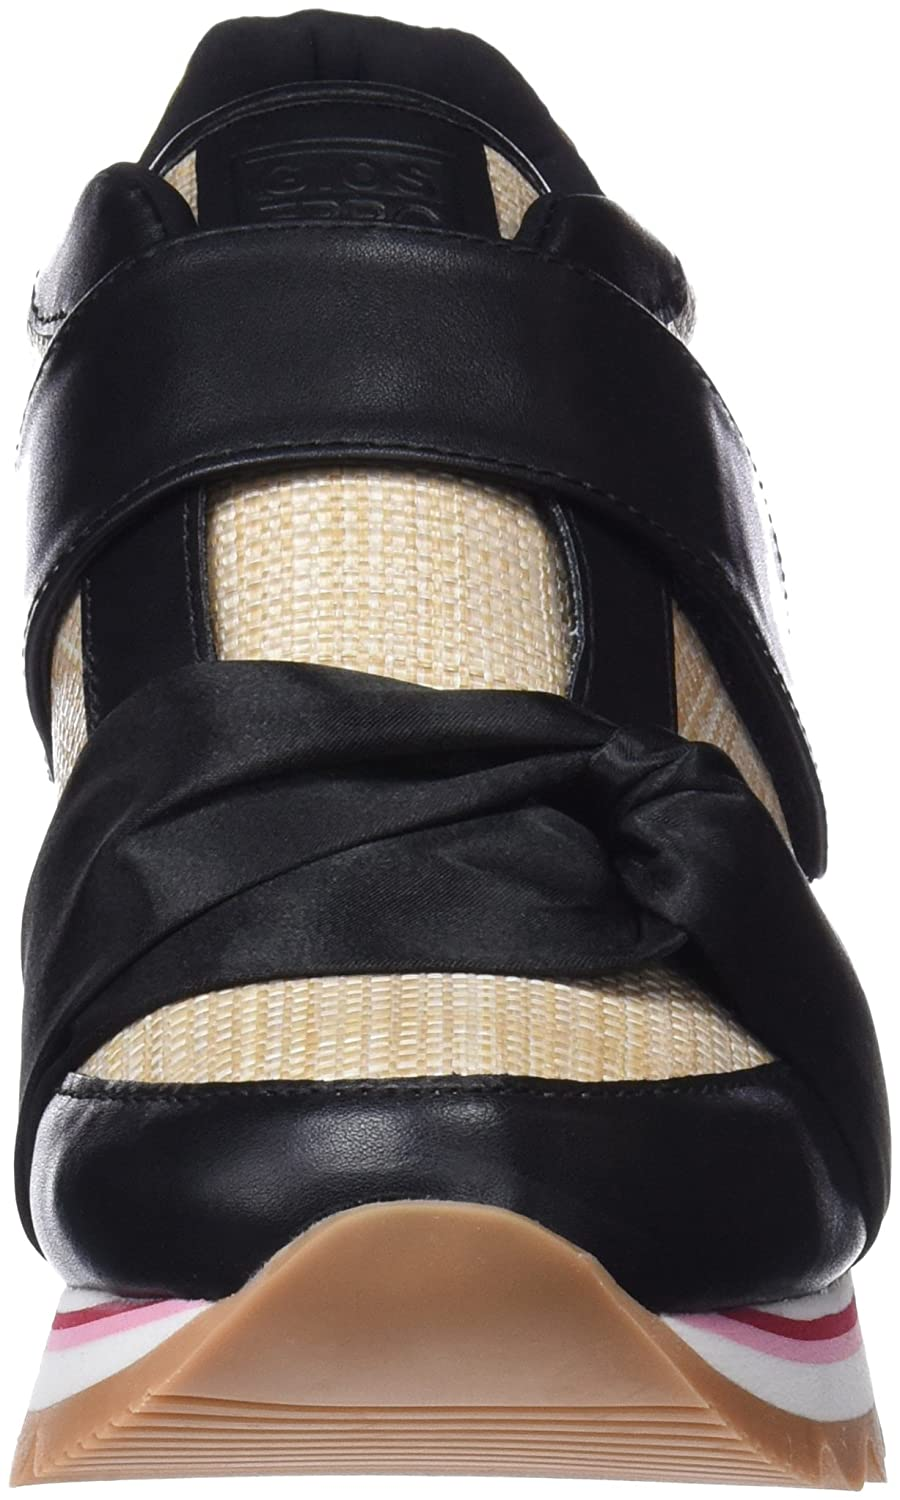 Amazon.com   Gioseppo Shoes Woman Sneakers high 43379 Black   Fashion Sneakers